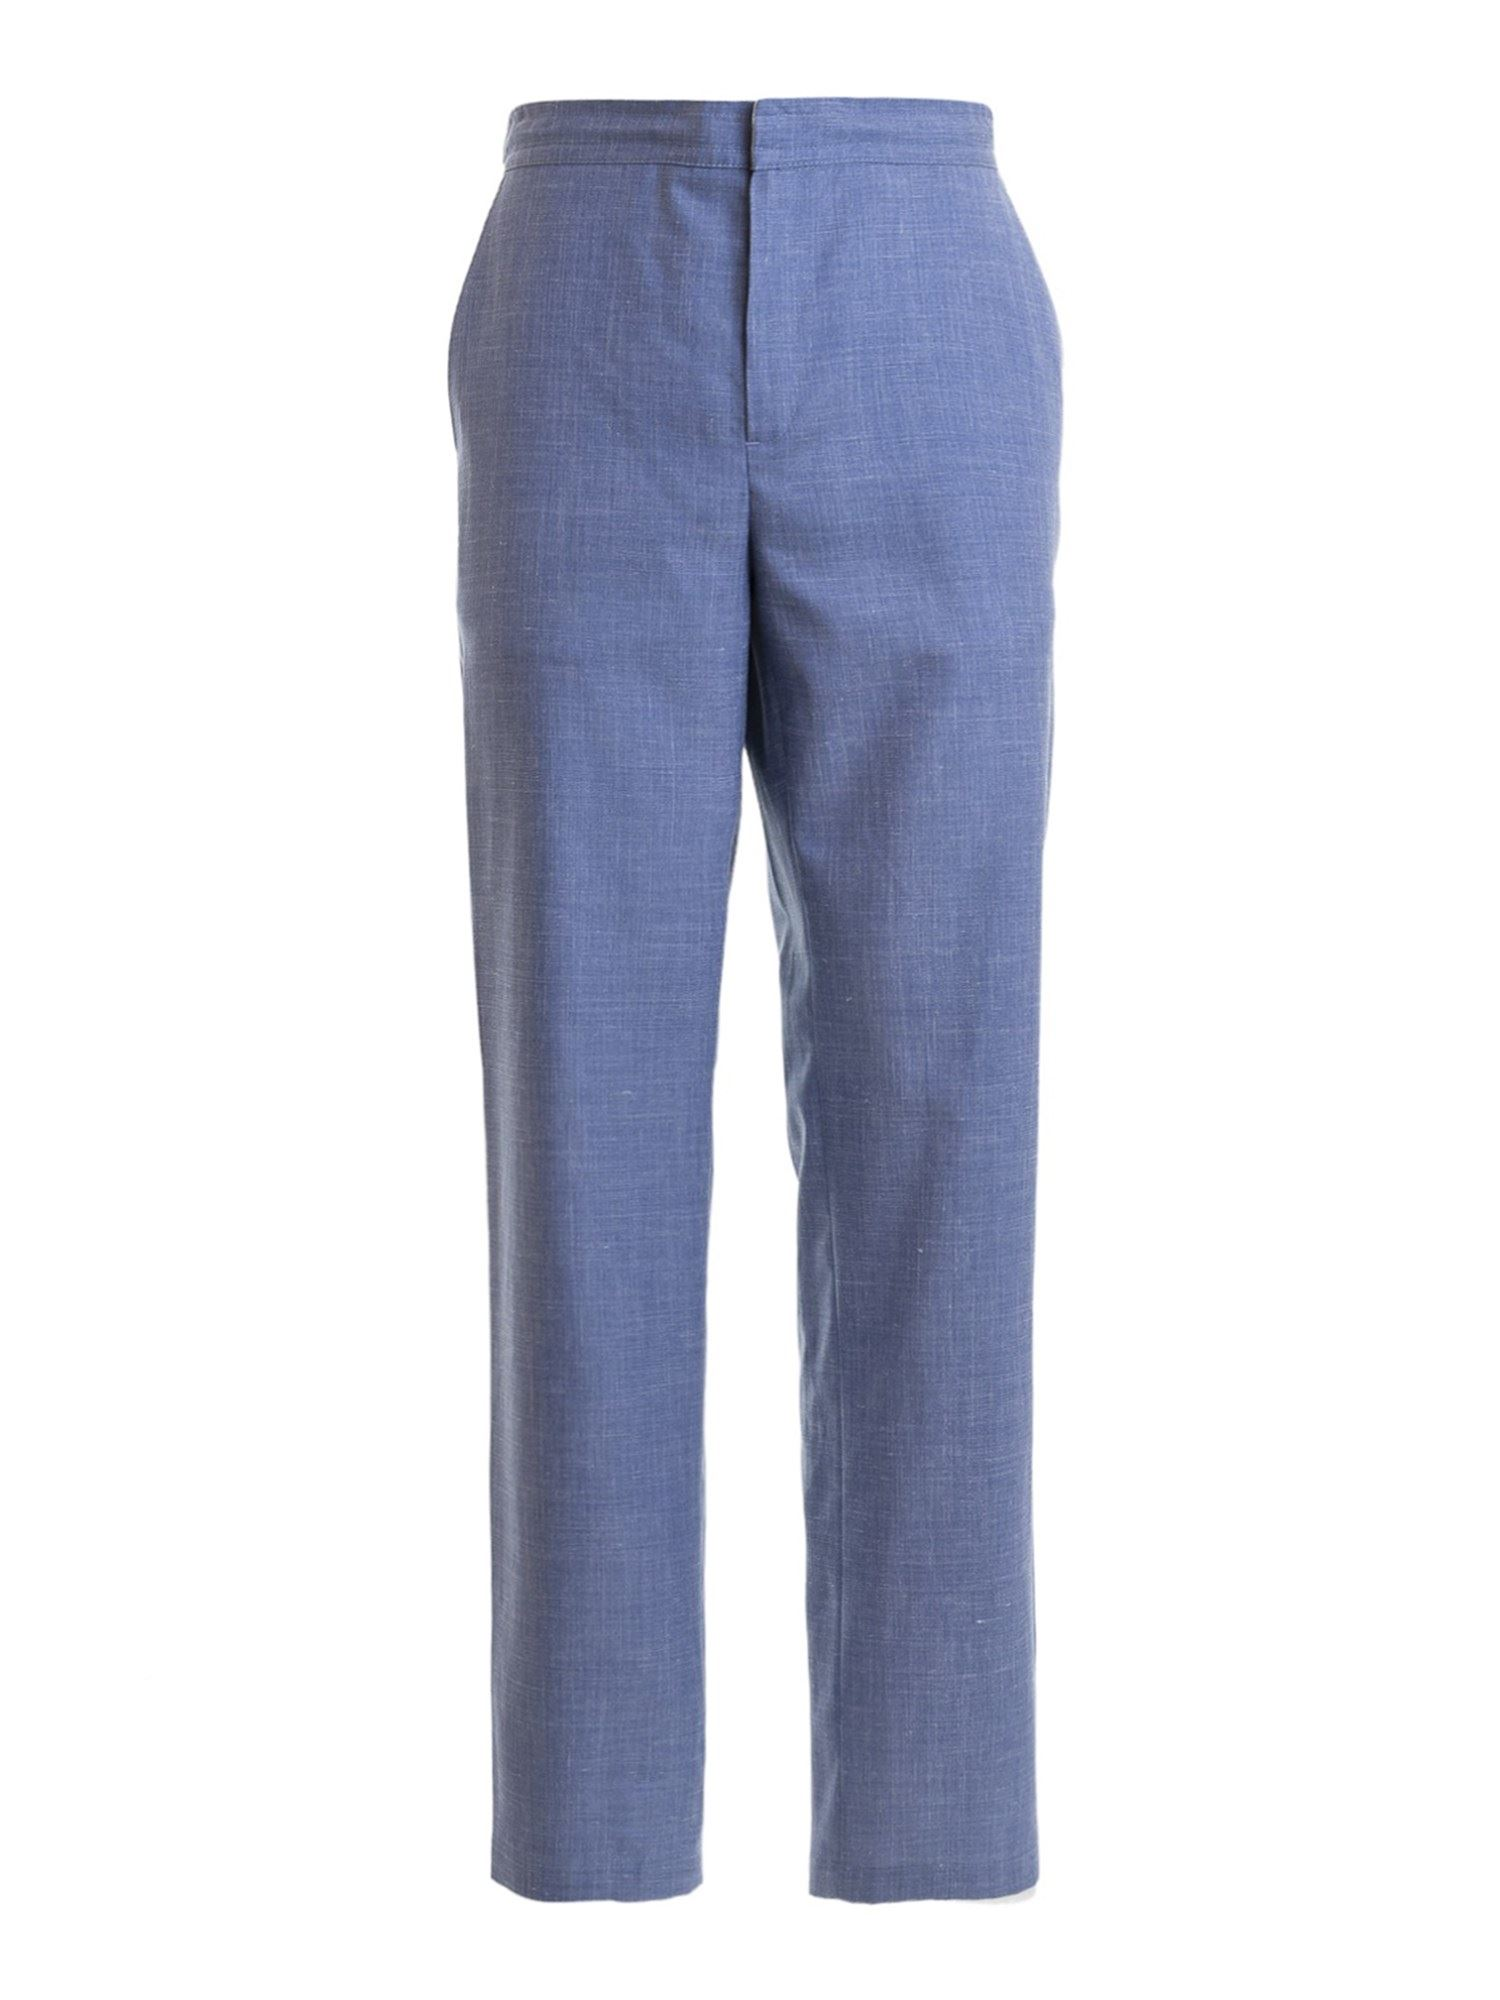 Brioni Light Blue Silk Blend Trousers